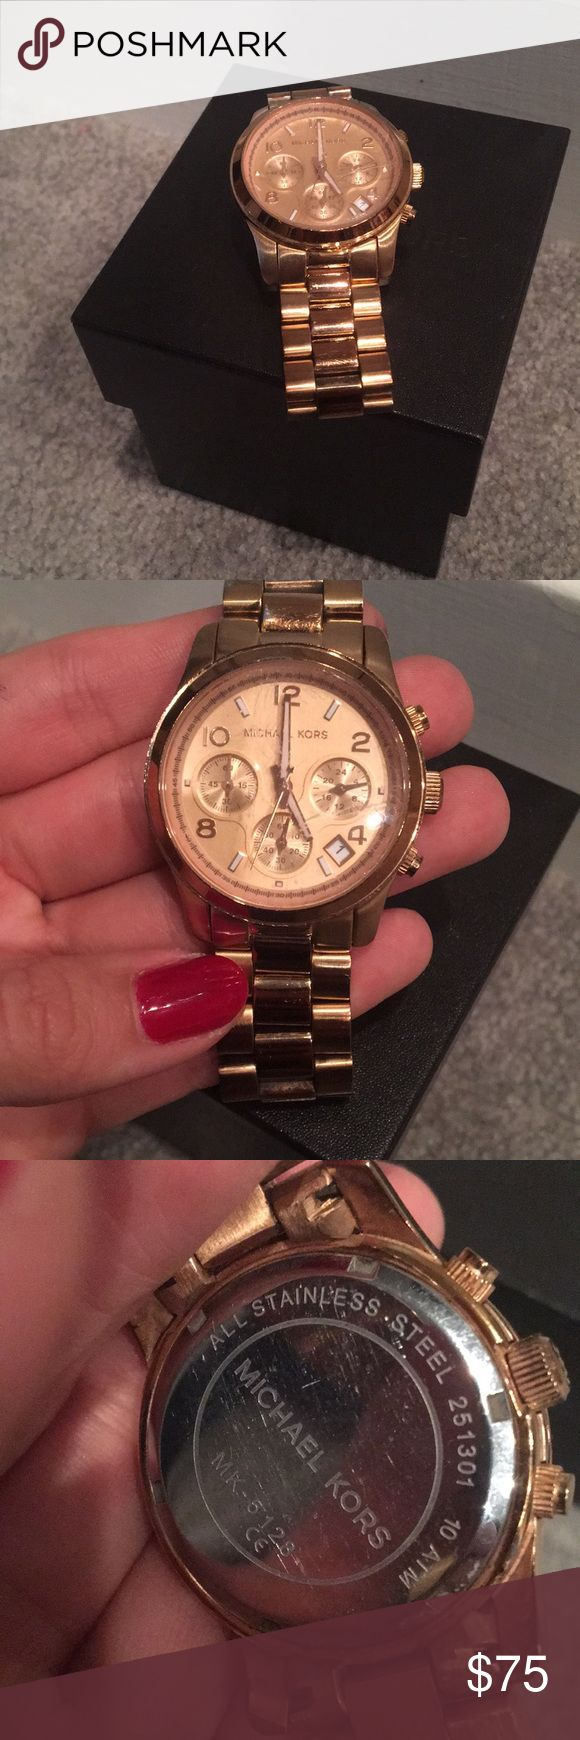 Rose gold Micheal Kors watch Normal wear and tear  Good condition  All rose gold  Box included Michael Kors Jewelry